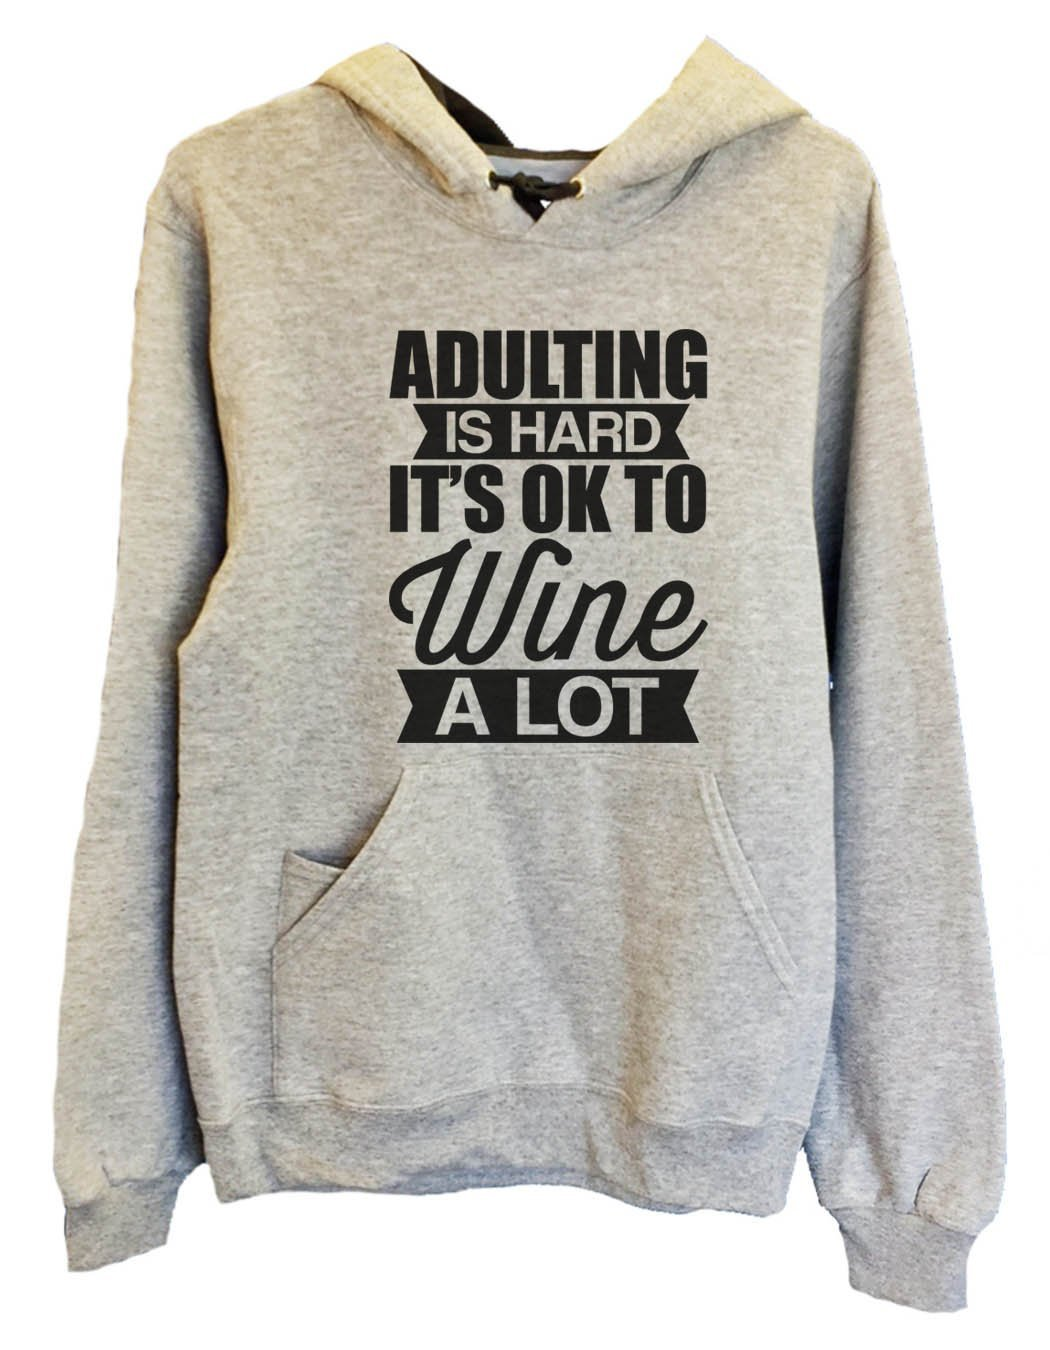 UNISEX HOODIE - Adulting Is Hard It's Ok To Wine A Lot - FUNNY MENS AND WOMENS HOODED SWEATSHIRTS - 2129 Funny Shirt Small / Heather Grey